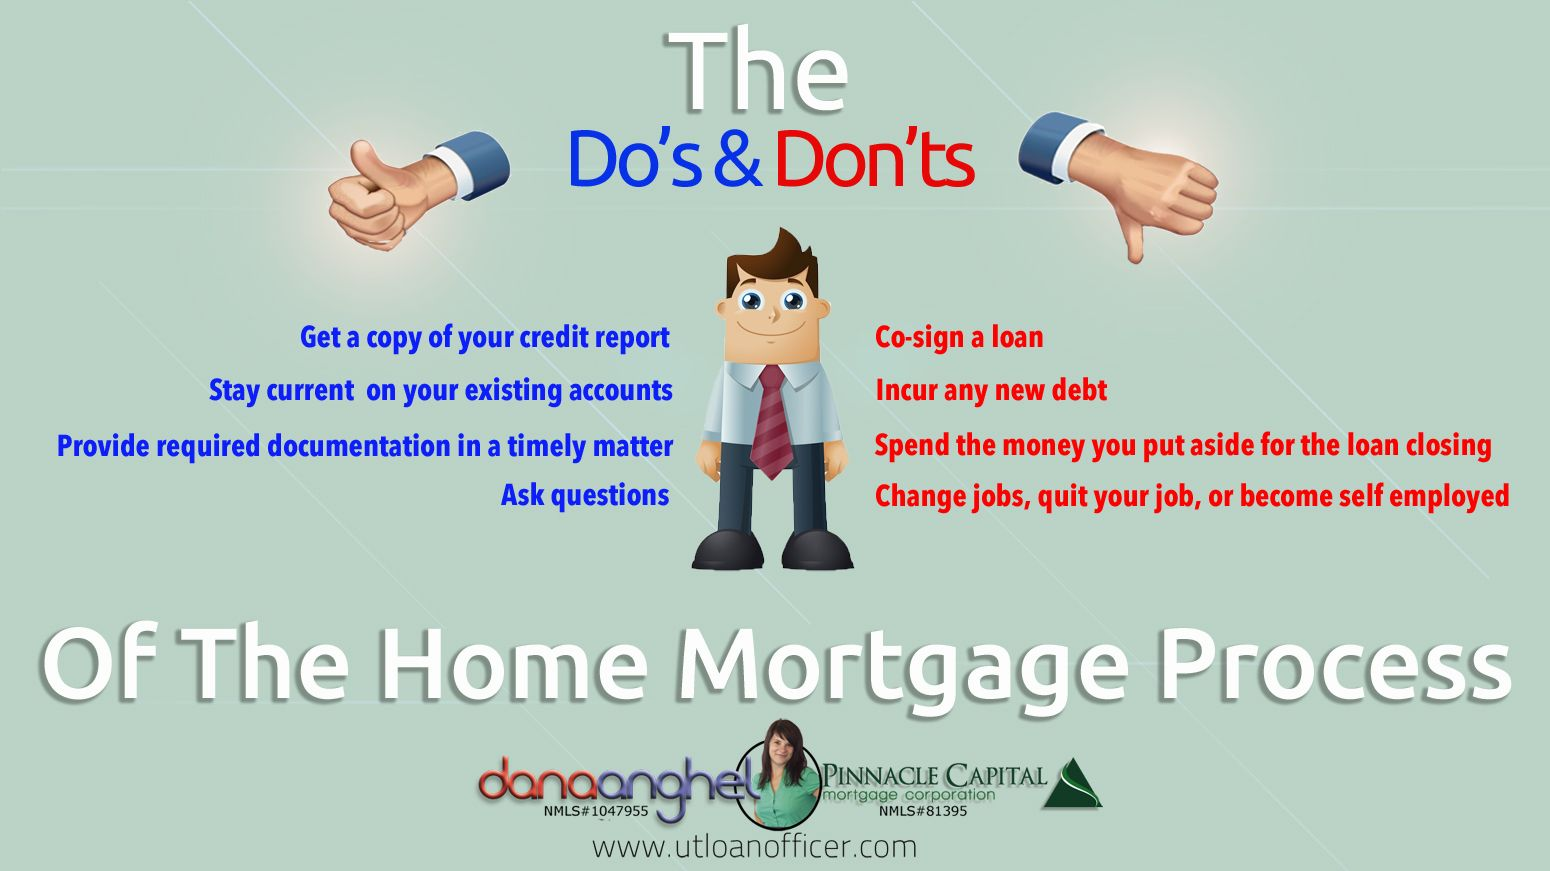 Do And Don T Of Mortgage Process When Getting A Mortgage Loan In Kentucky For Fha Va Khc Usda Fannie Mae Ky Home Buying Process Home Buying Changing Jobs